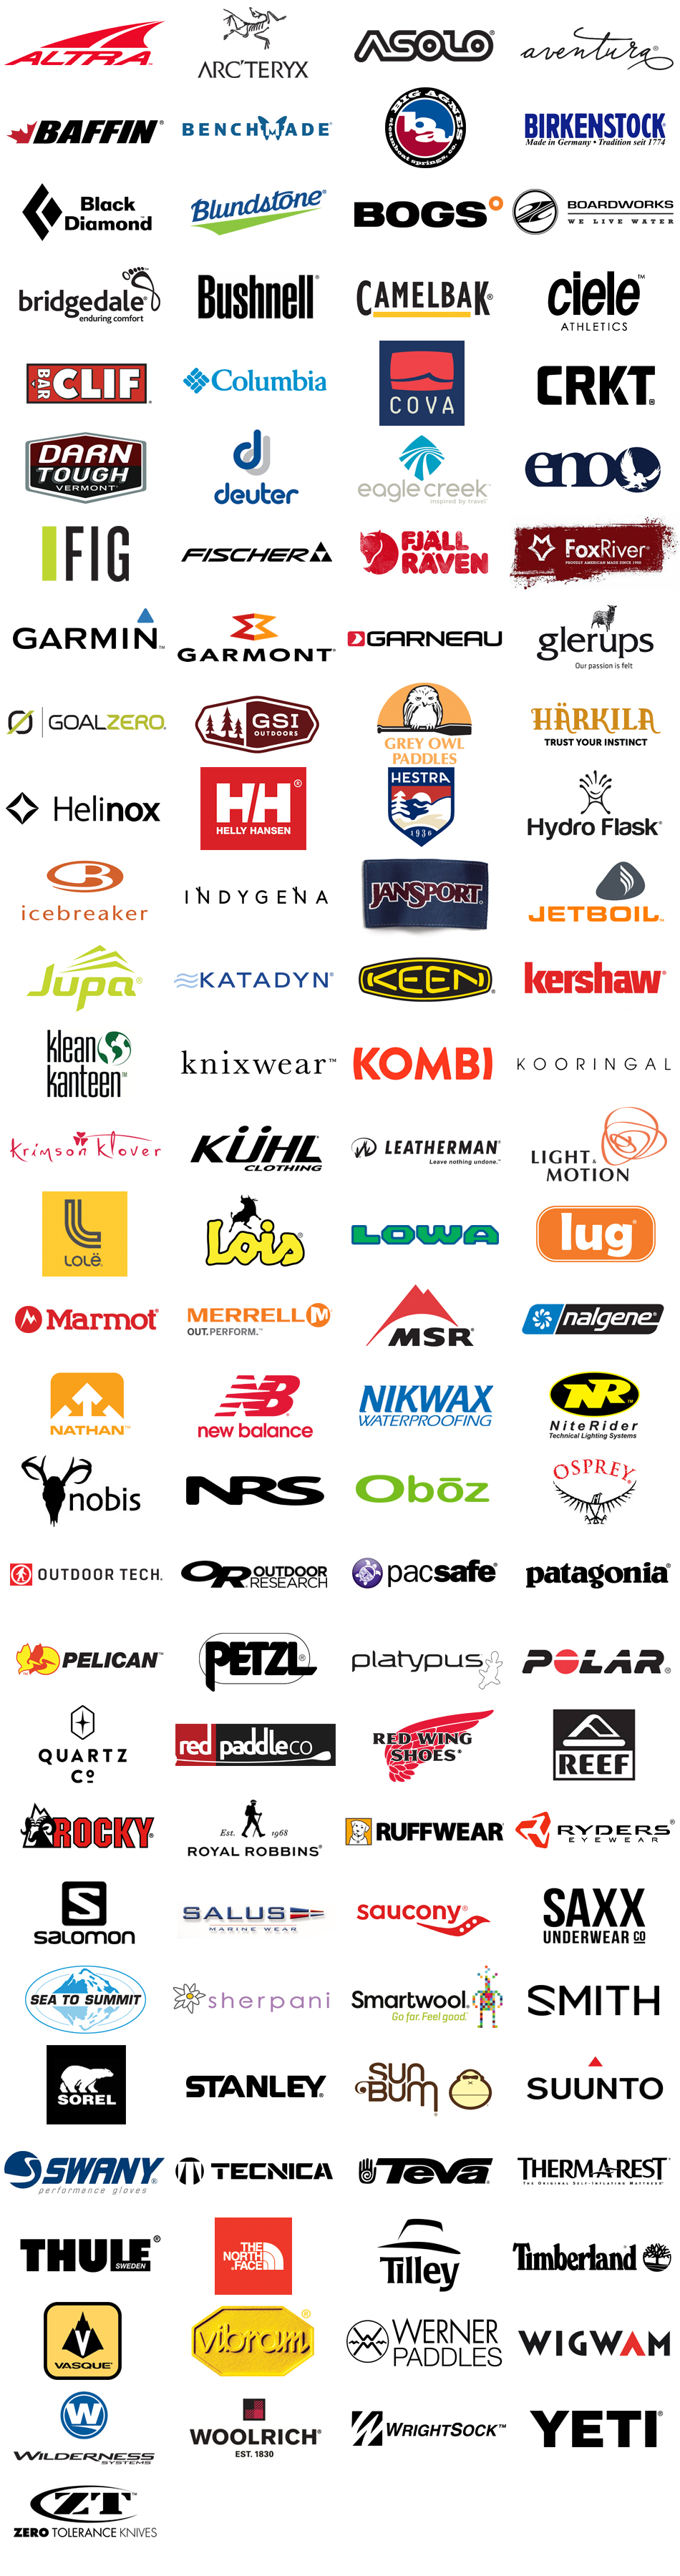 Some of the outdoor brands we carry